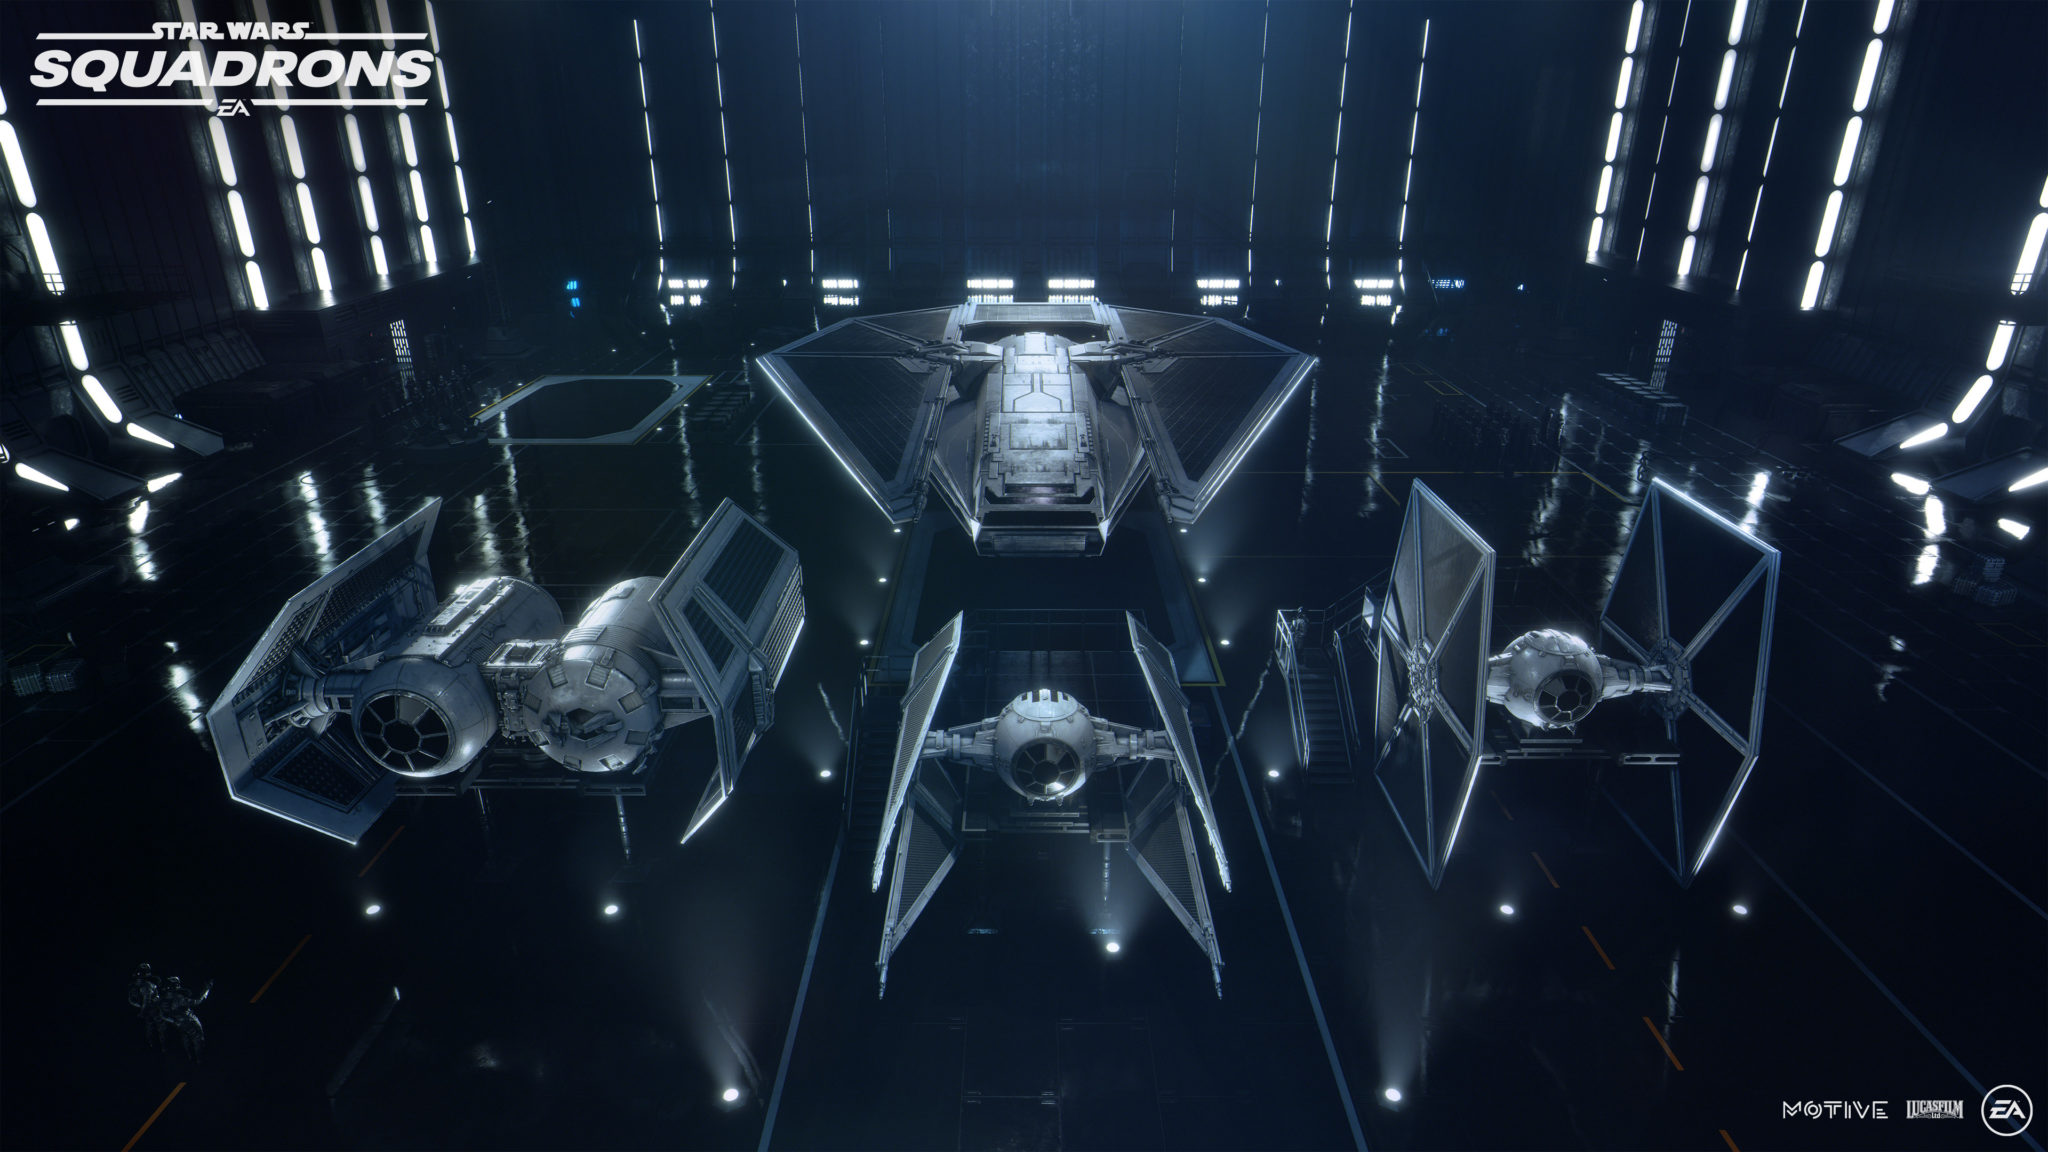 Star Wars: Squadrons has officially been revealed, and now we know a bit more about the game.